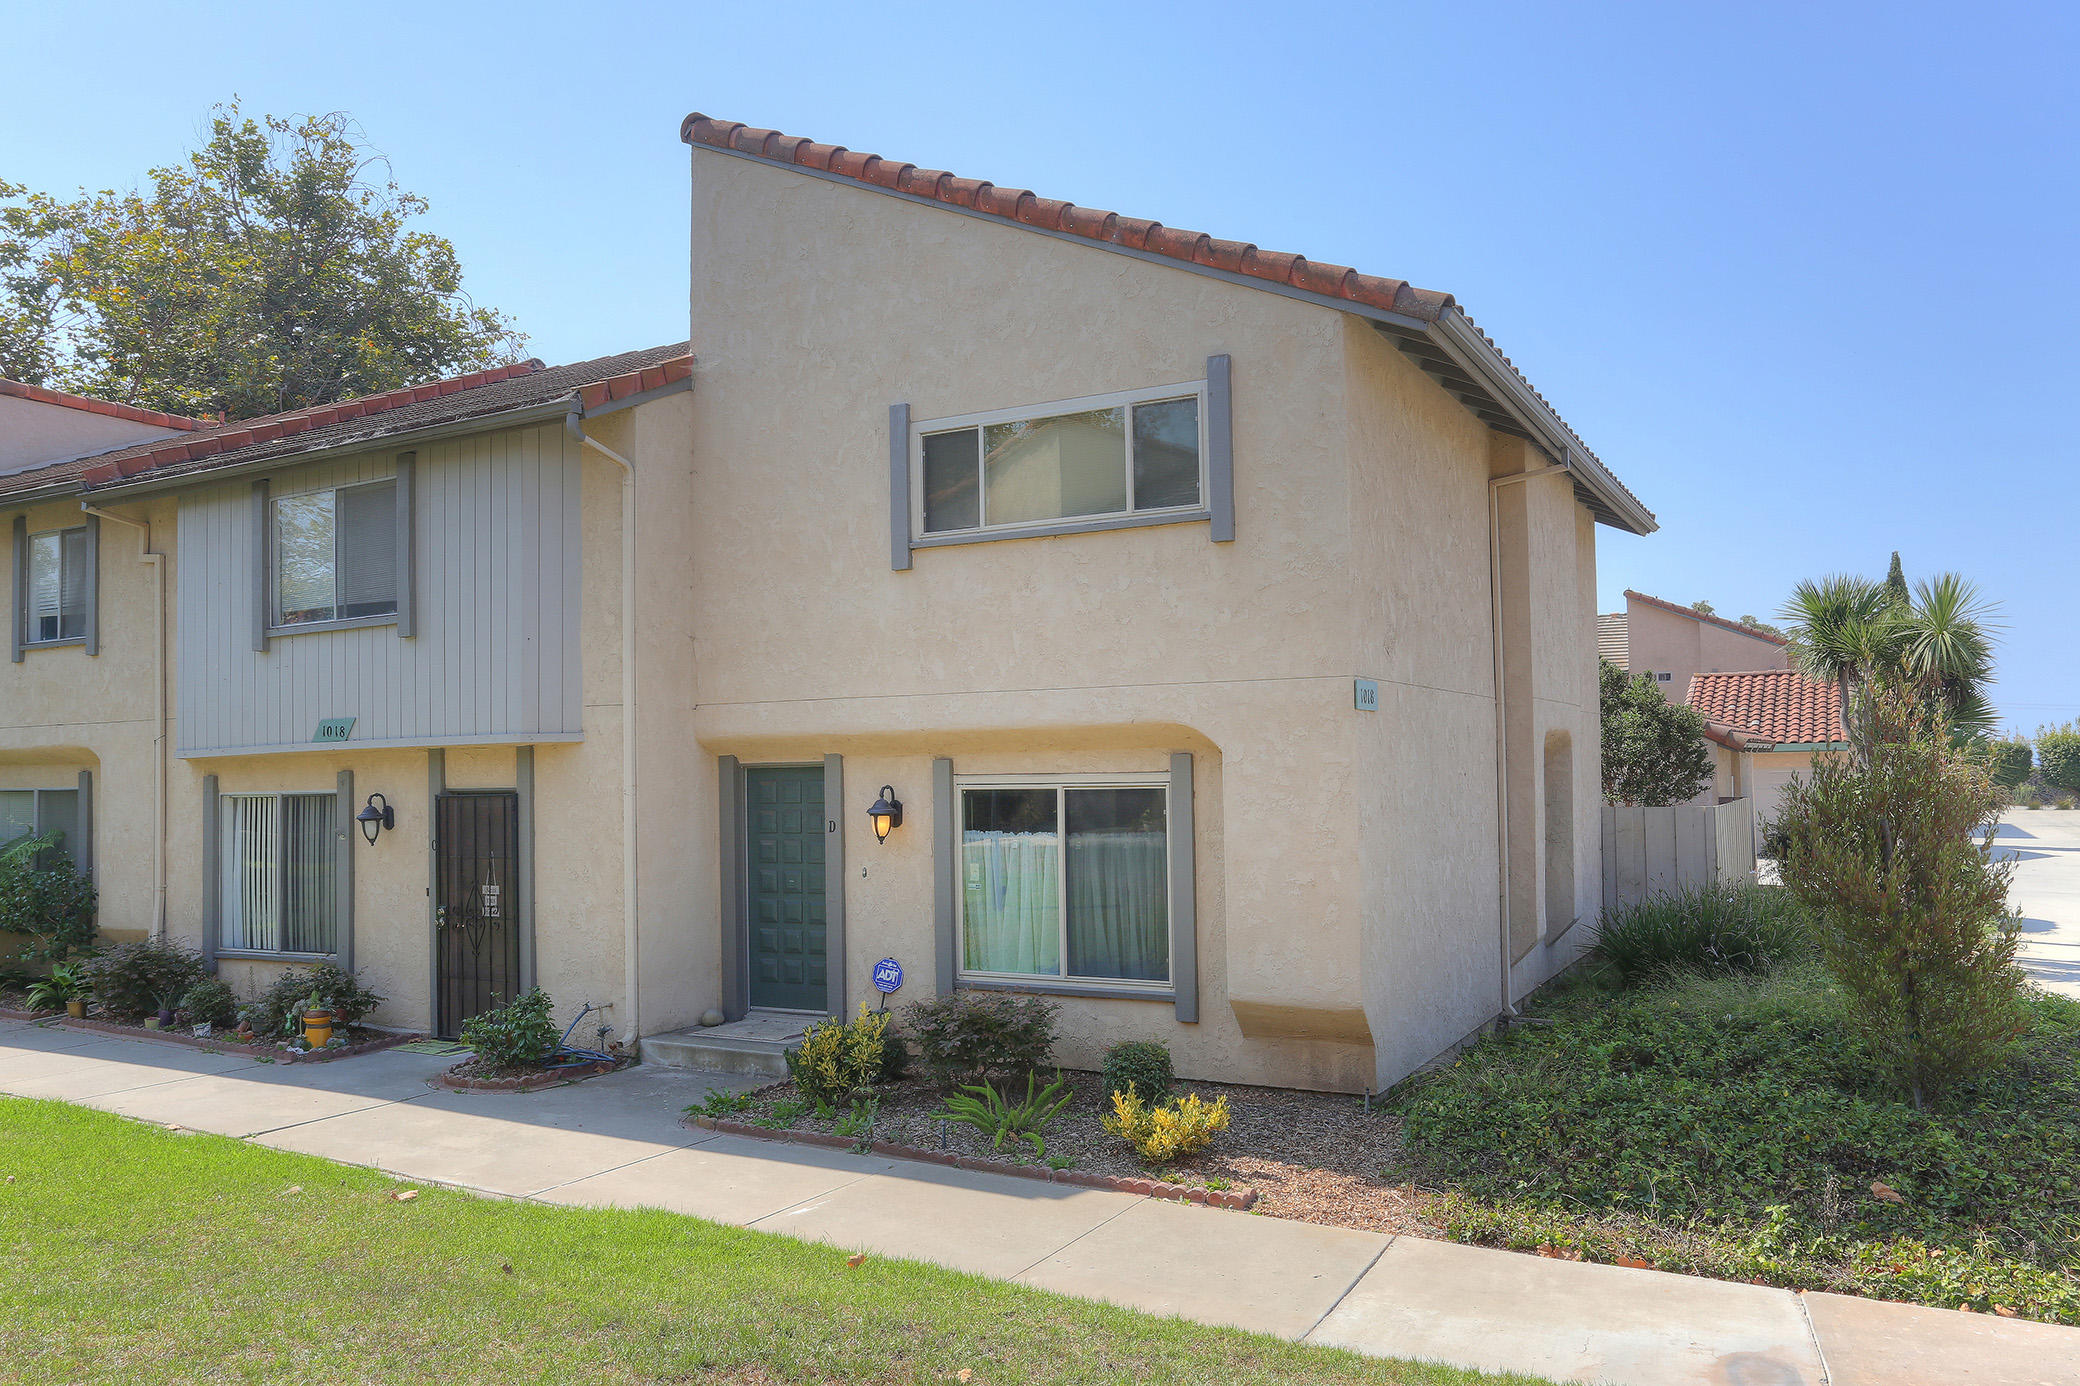 Property photo for 1018 Palmetto Way #D Carpinteria, California 93013 - 17-3042